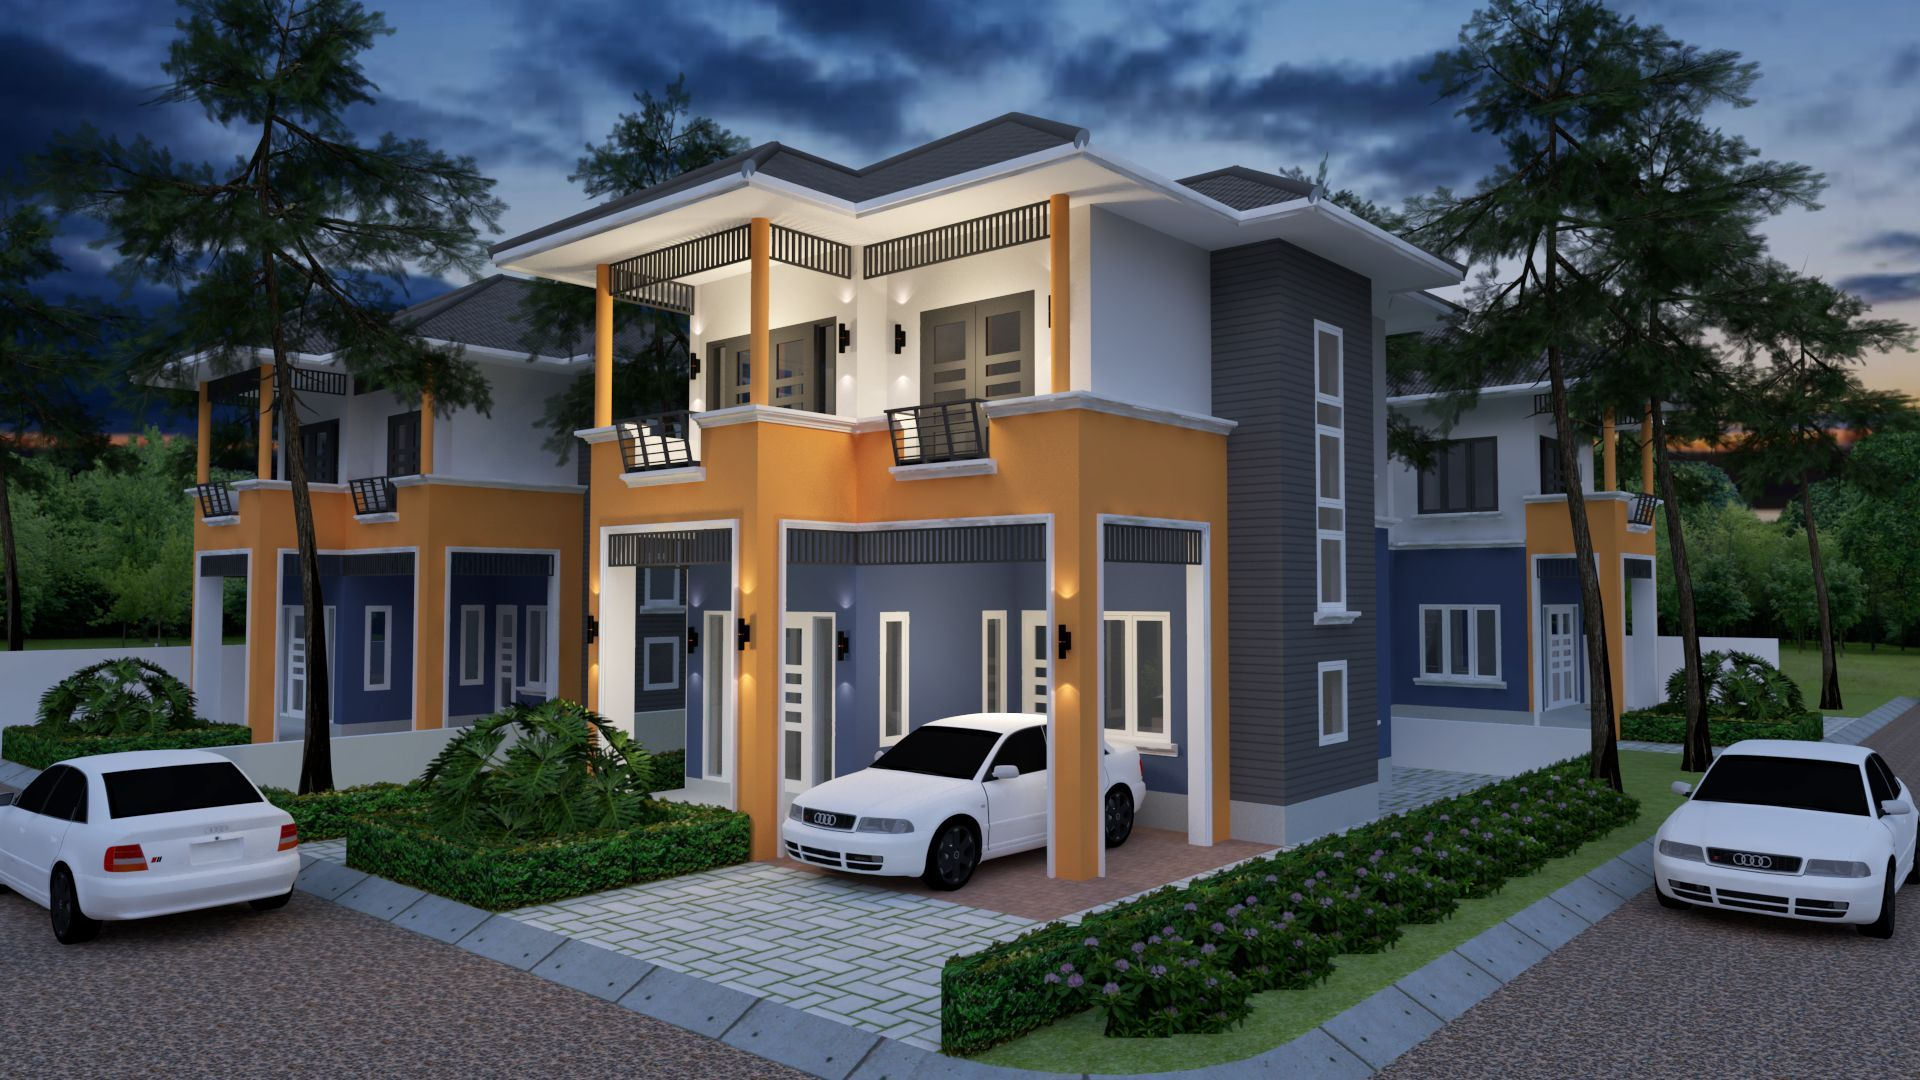 Home Plan 6x9 5m With 3 Bedrooms Samphoas Plansearch Kitchendesign6x9 Simple Bungalow House Designs Bungalow House Design House Plans